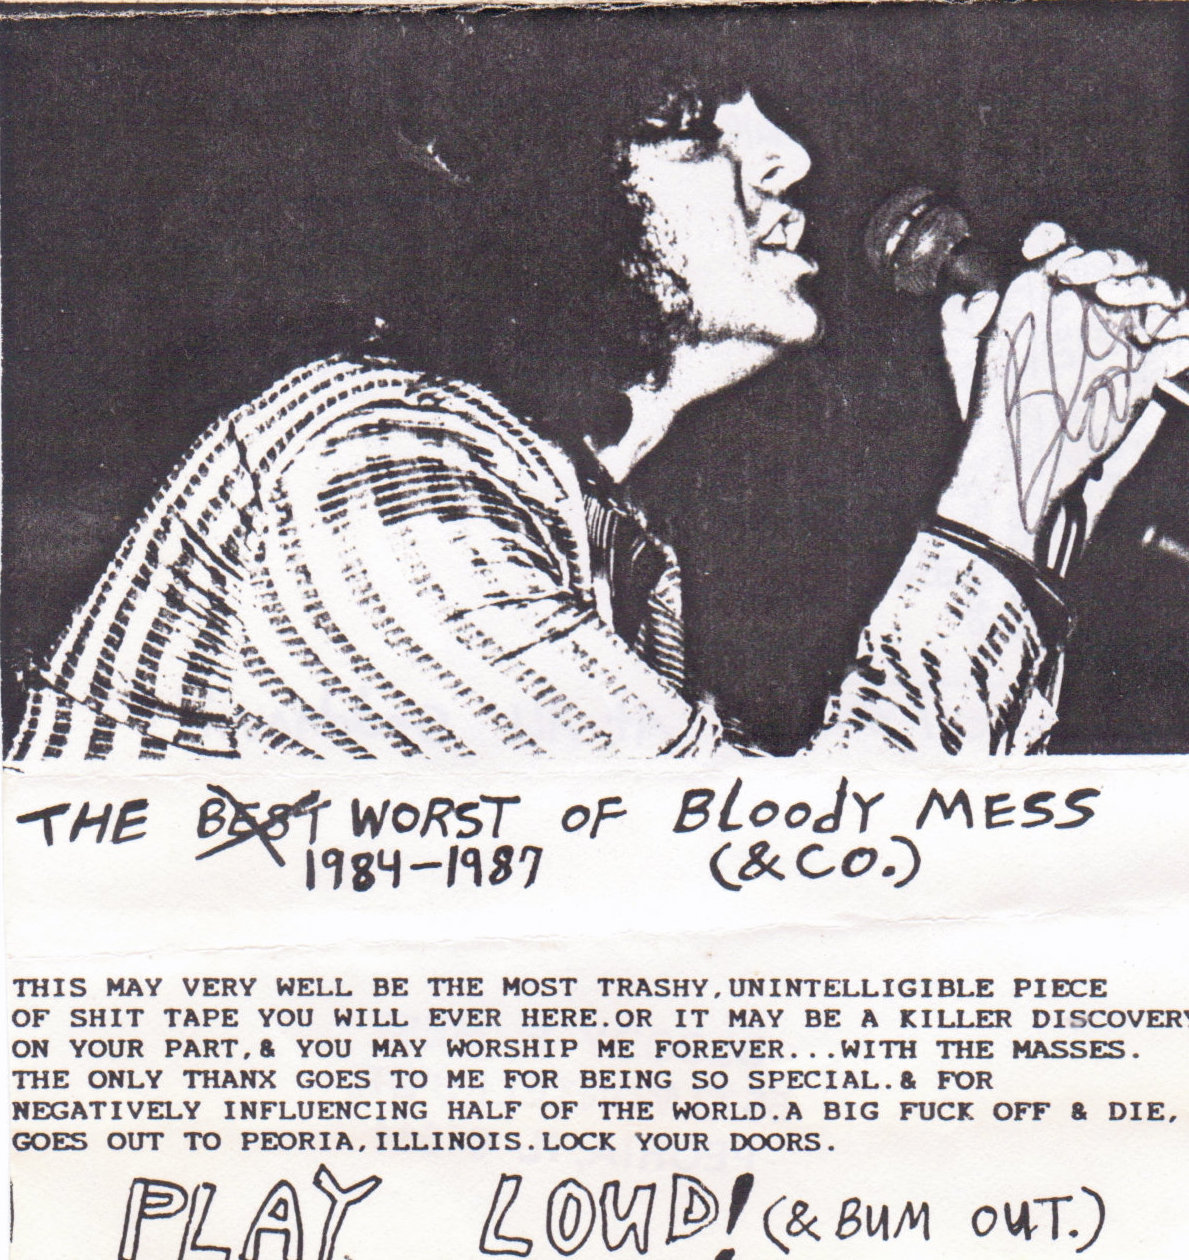 The Worst of Bloody Mess (& Co.) 1984-1987